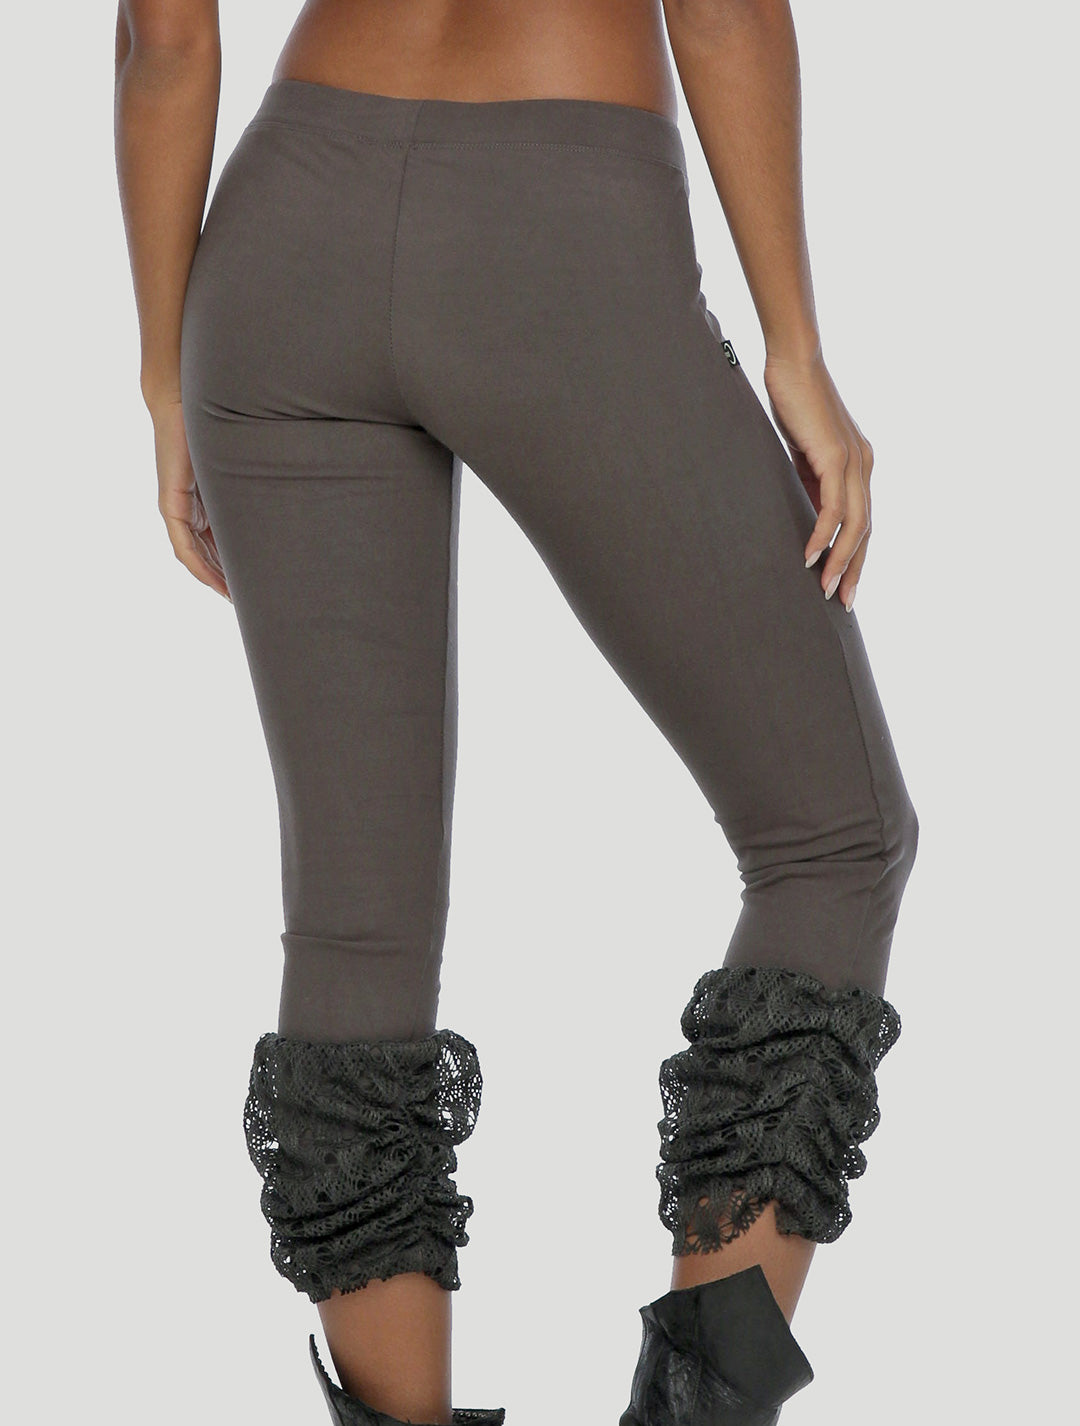 Psylo Fashion ethical alternative streetwear Moon 7/8 Leggings in grey charcoal